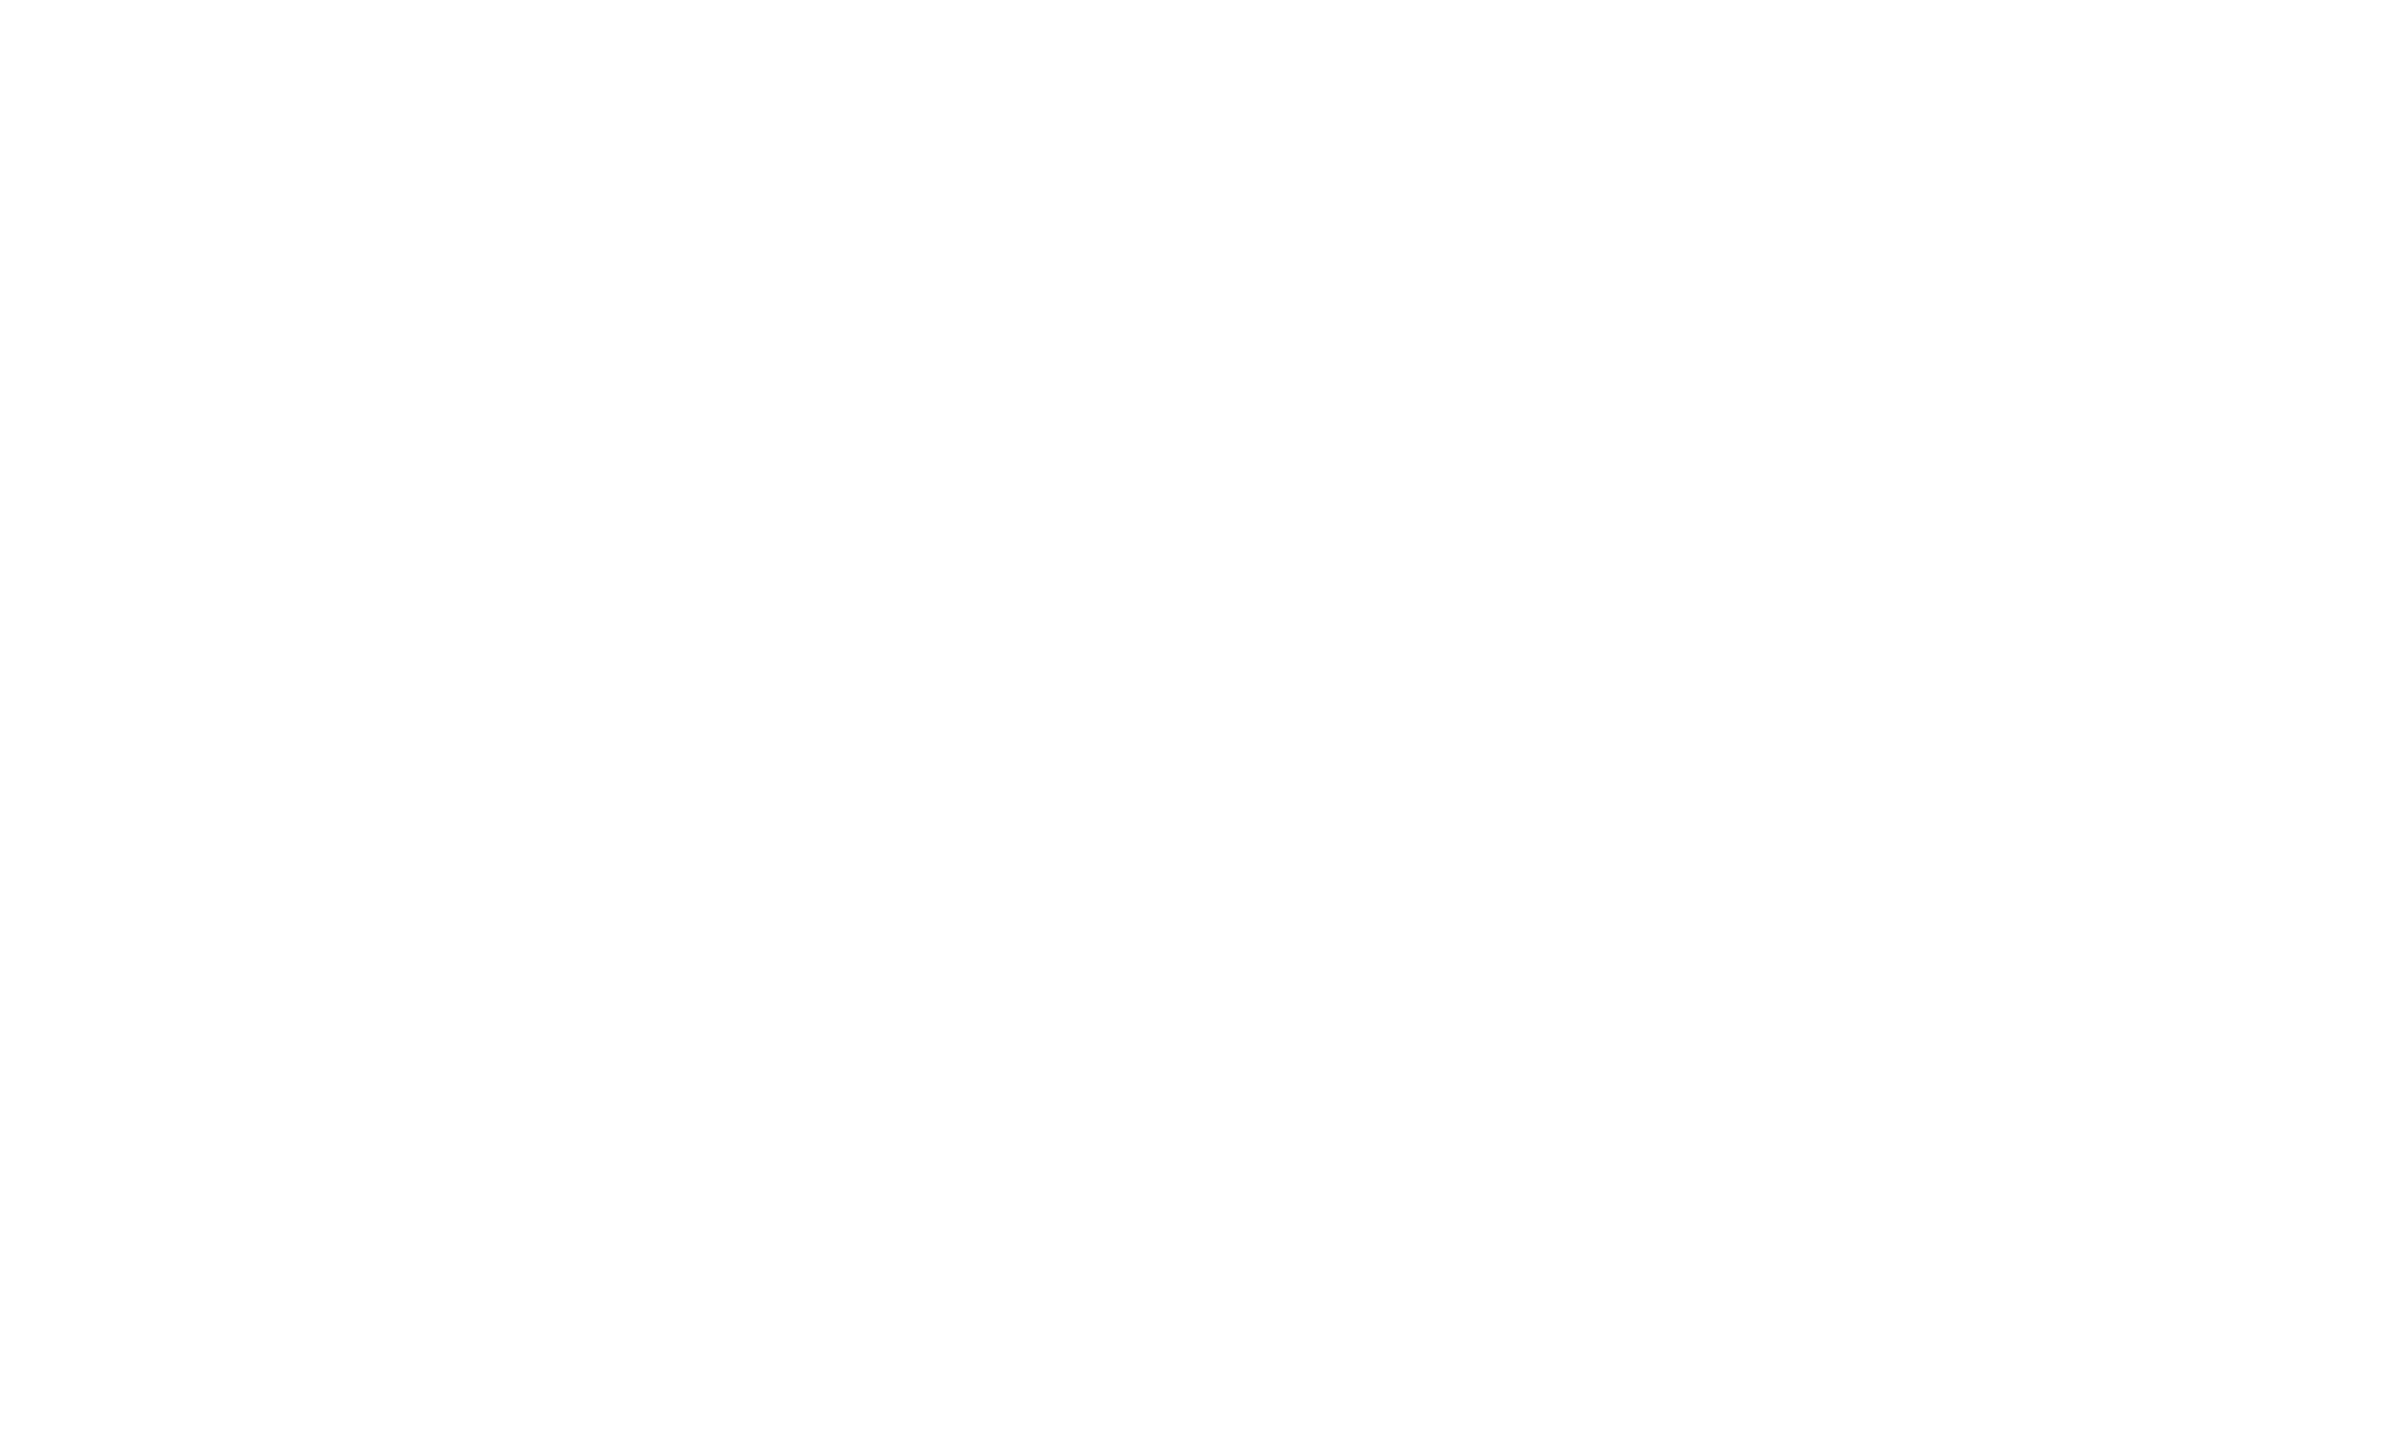 Wild Outdoorsman Outfitting | Wilderness Trophy Hunting New Zealand